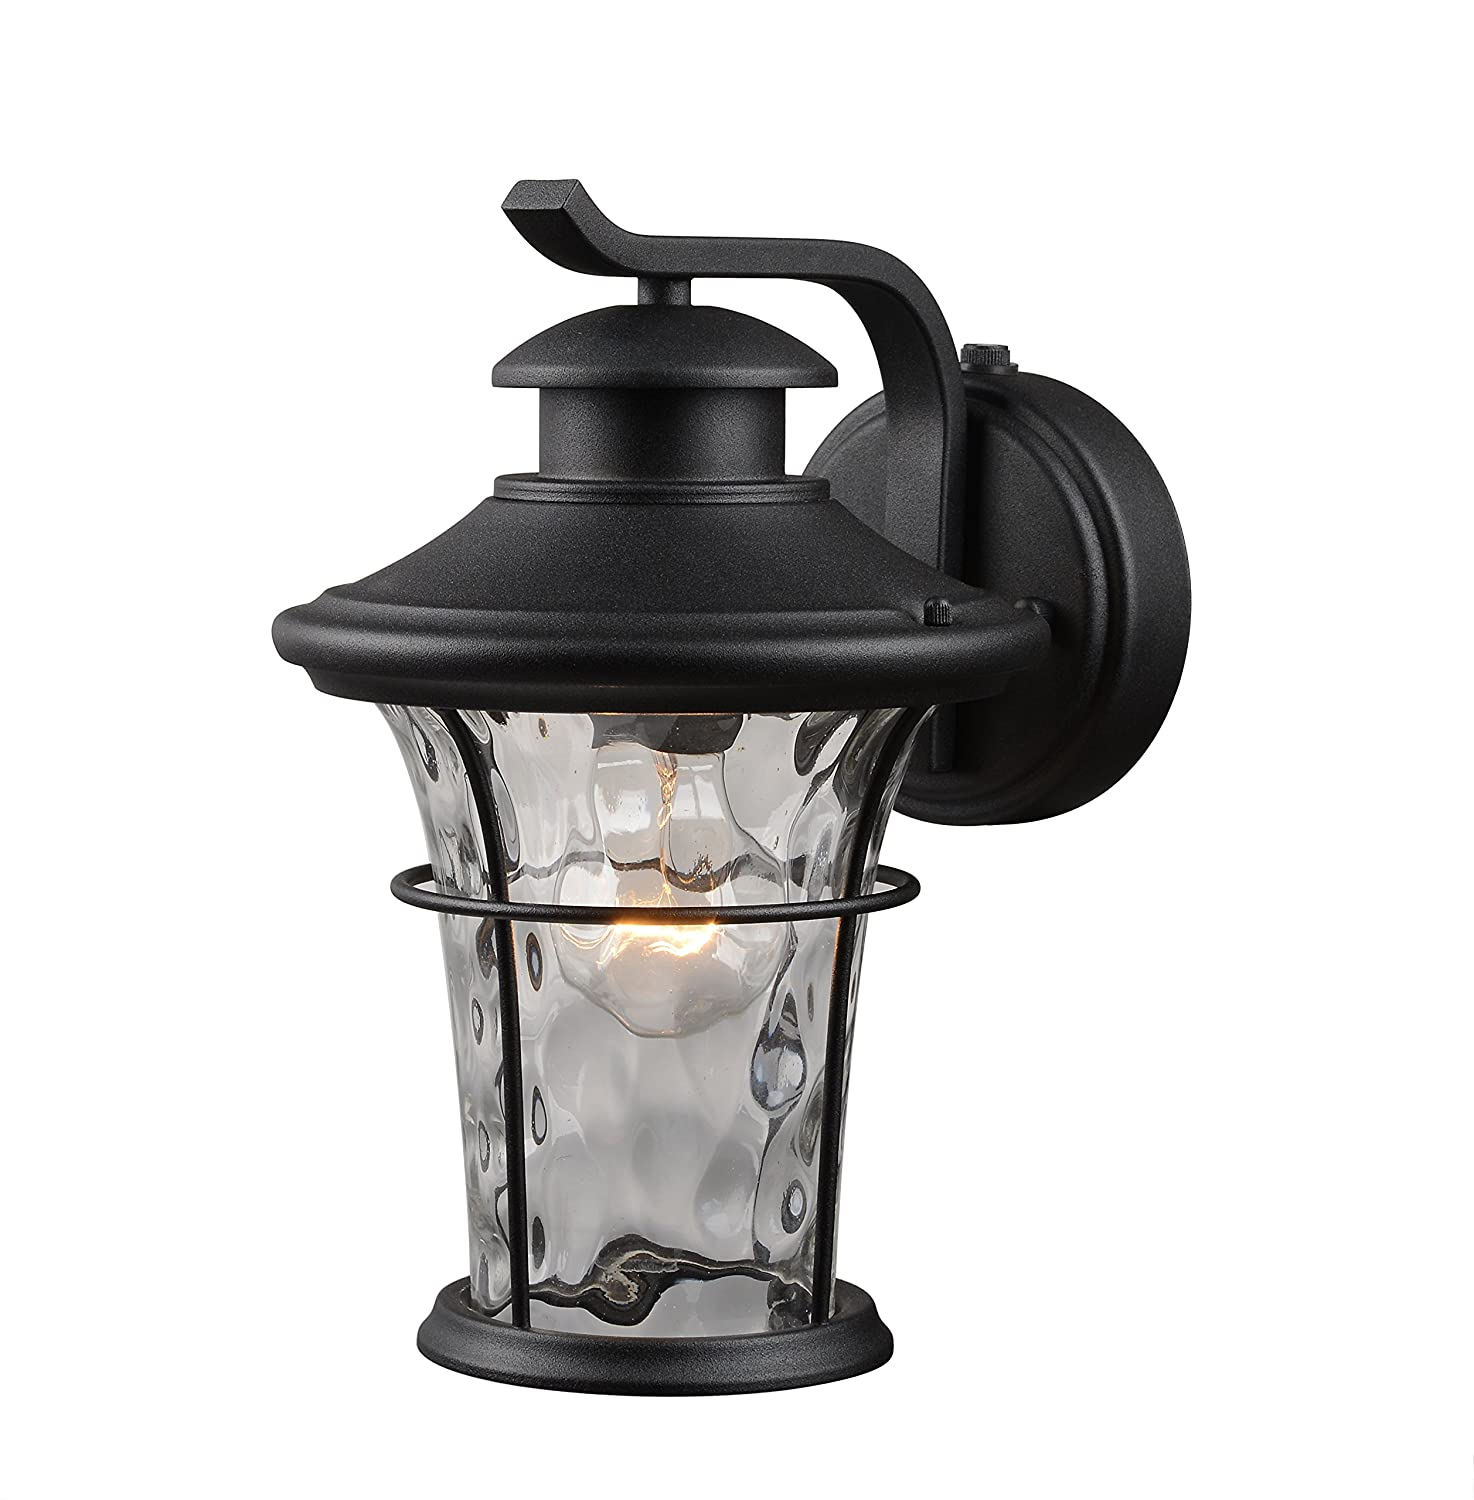 Hardware House 21-2274 Outdoor Water Glass Wall Lantern with Photo Cell